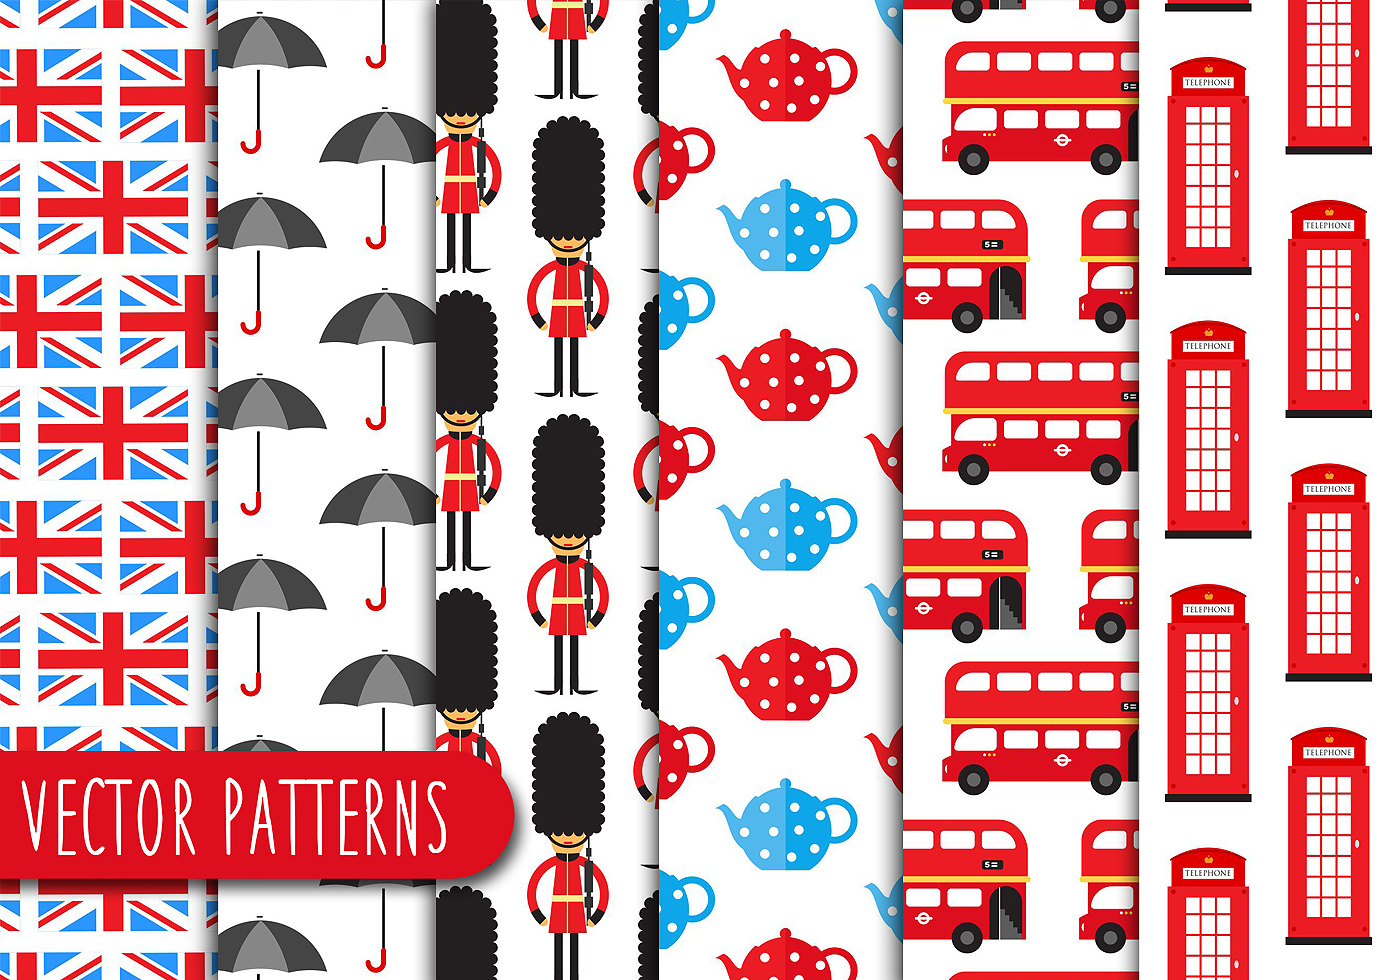 London Pattern set